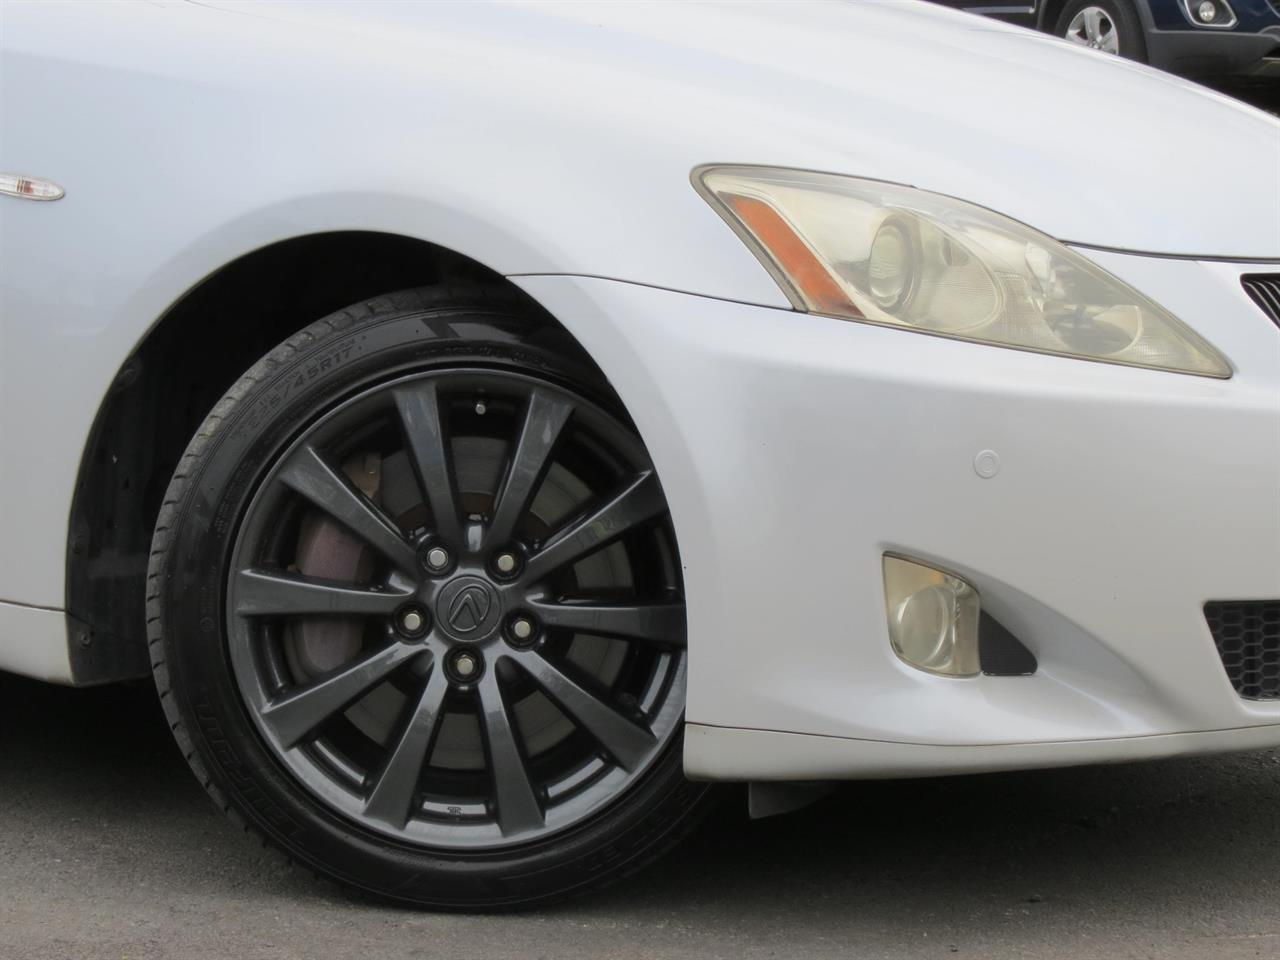 2006 Lexus IS 350 | only $37 weekly